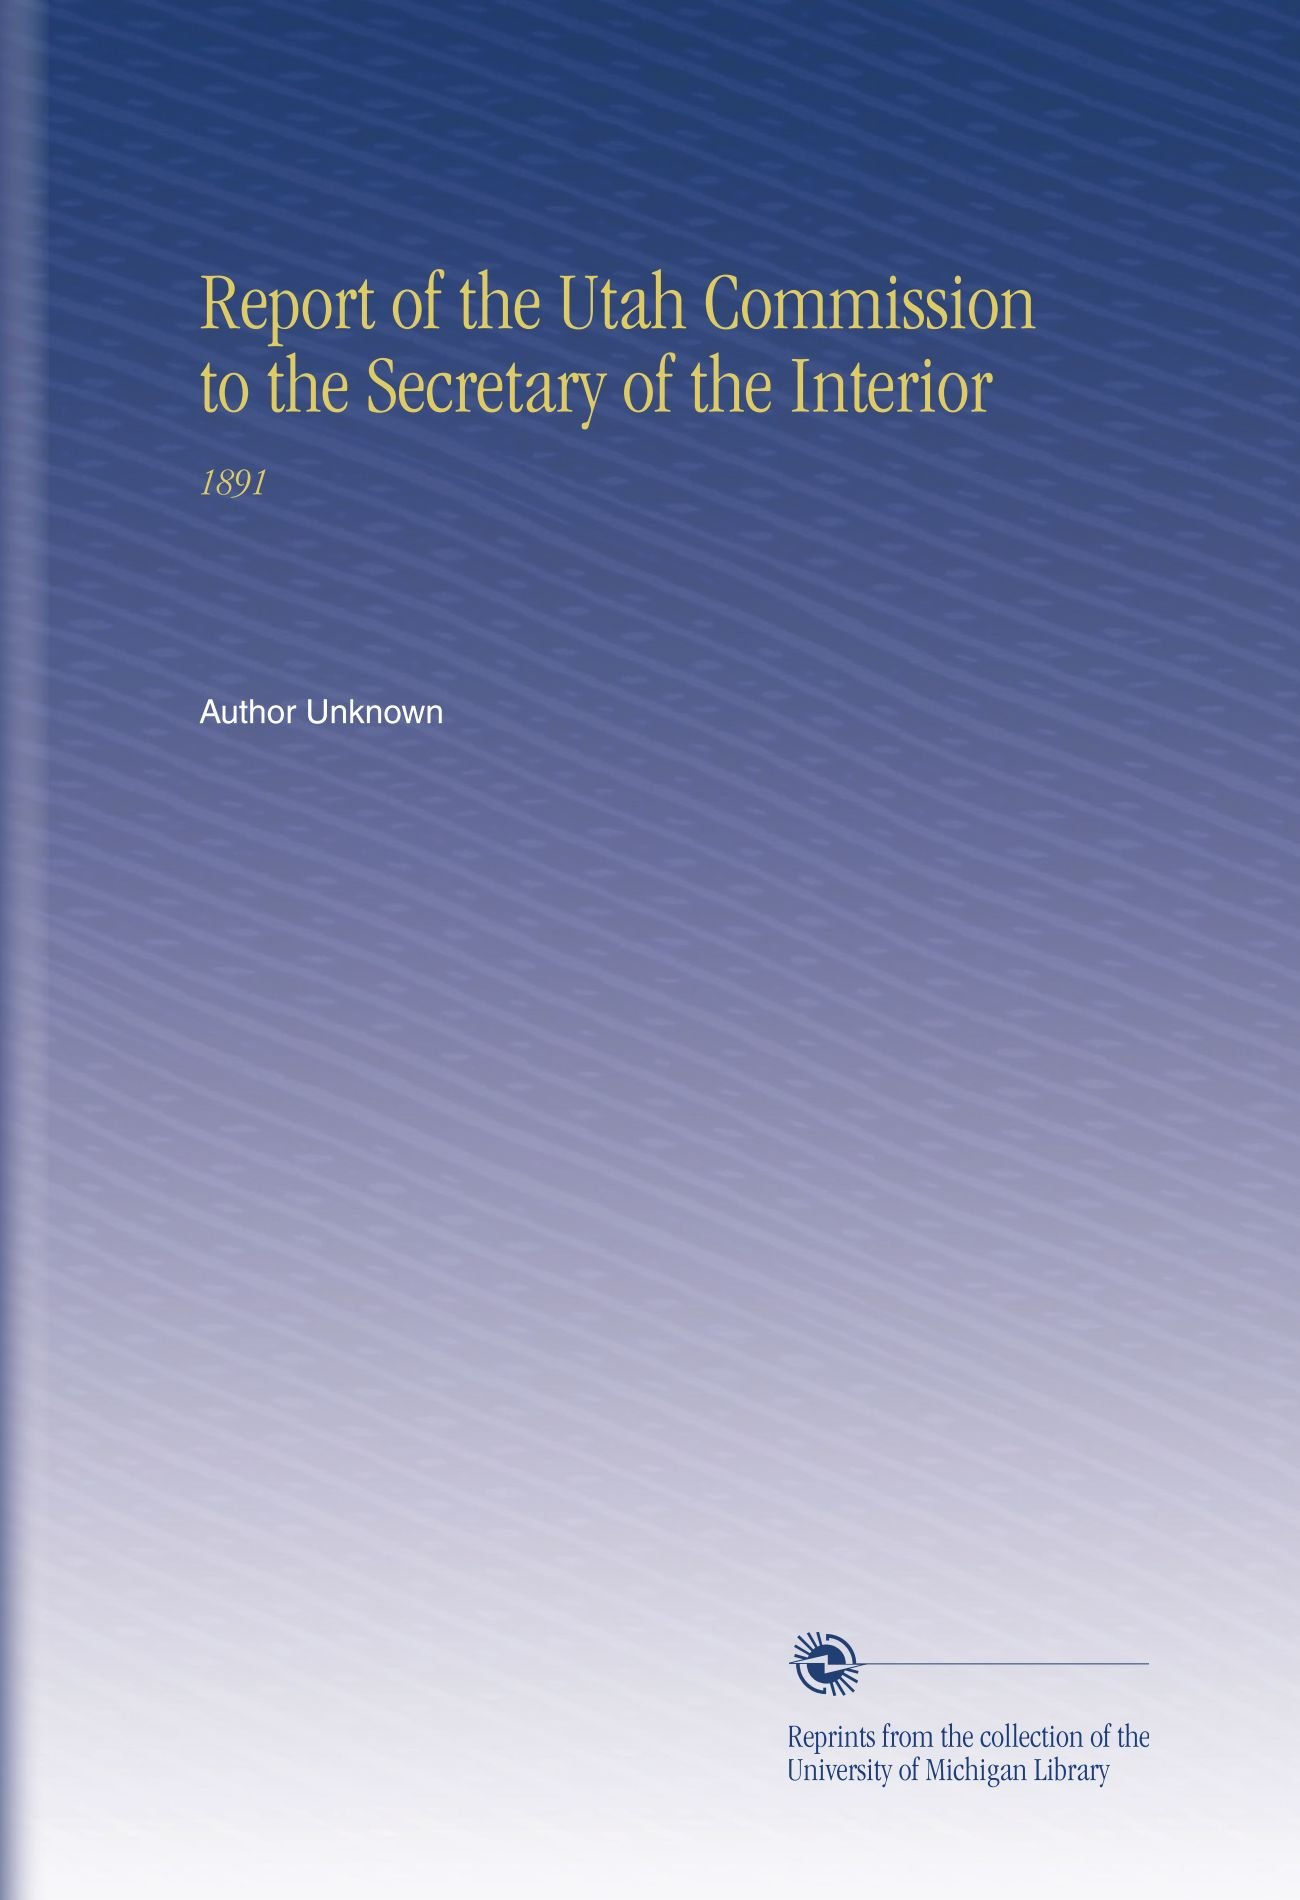 Download Report of the Utah Commission to the Secretary of the Interior: 1891 pdf